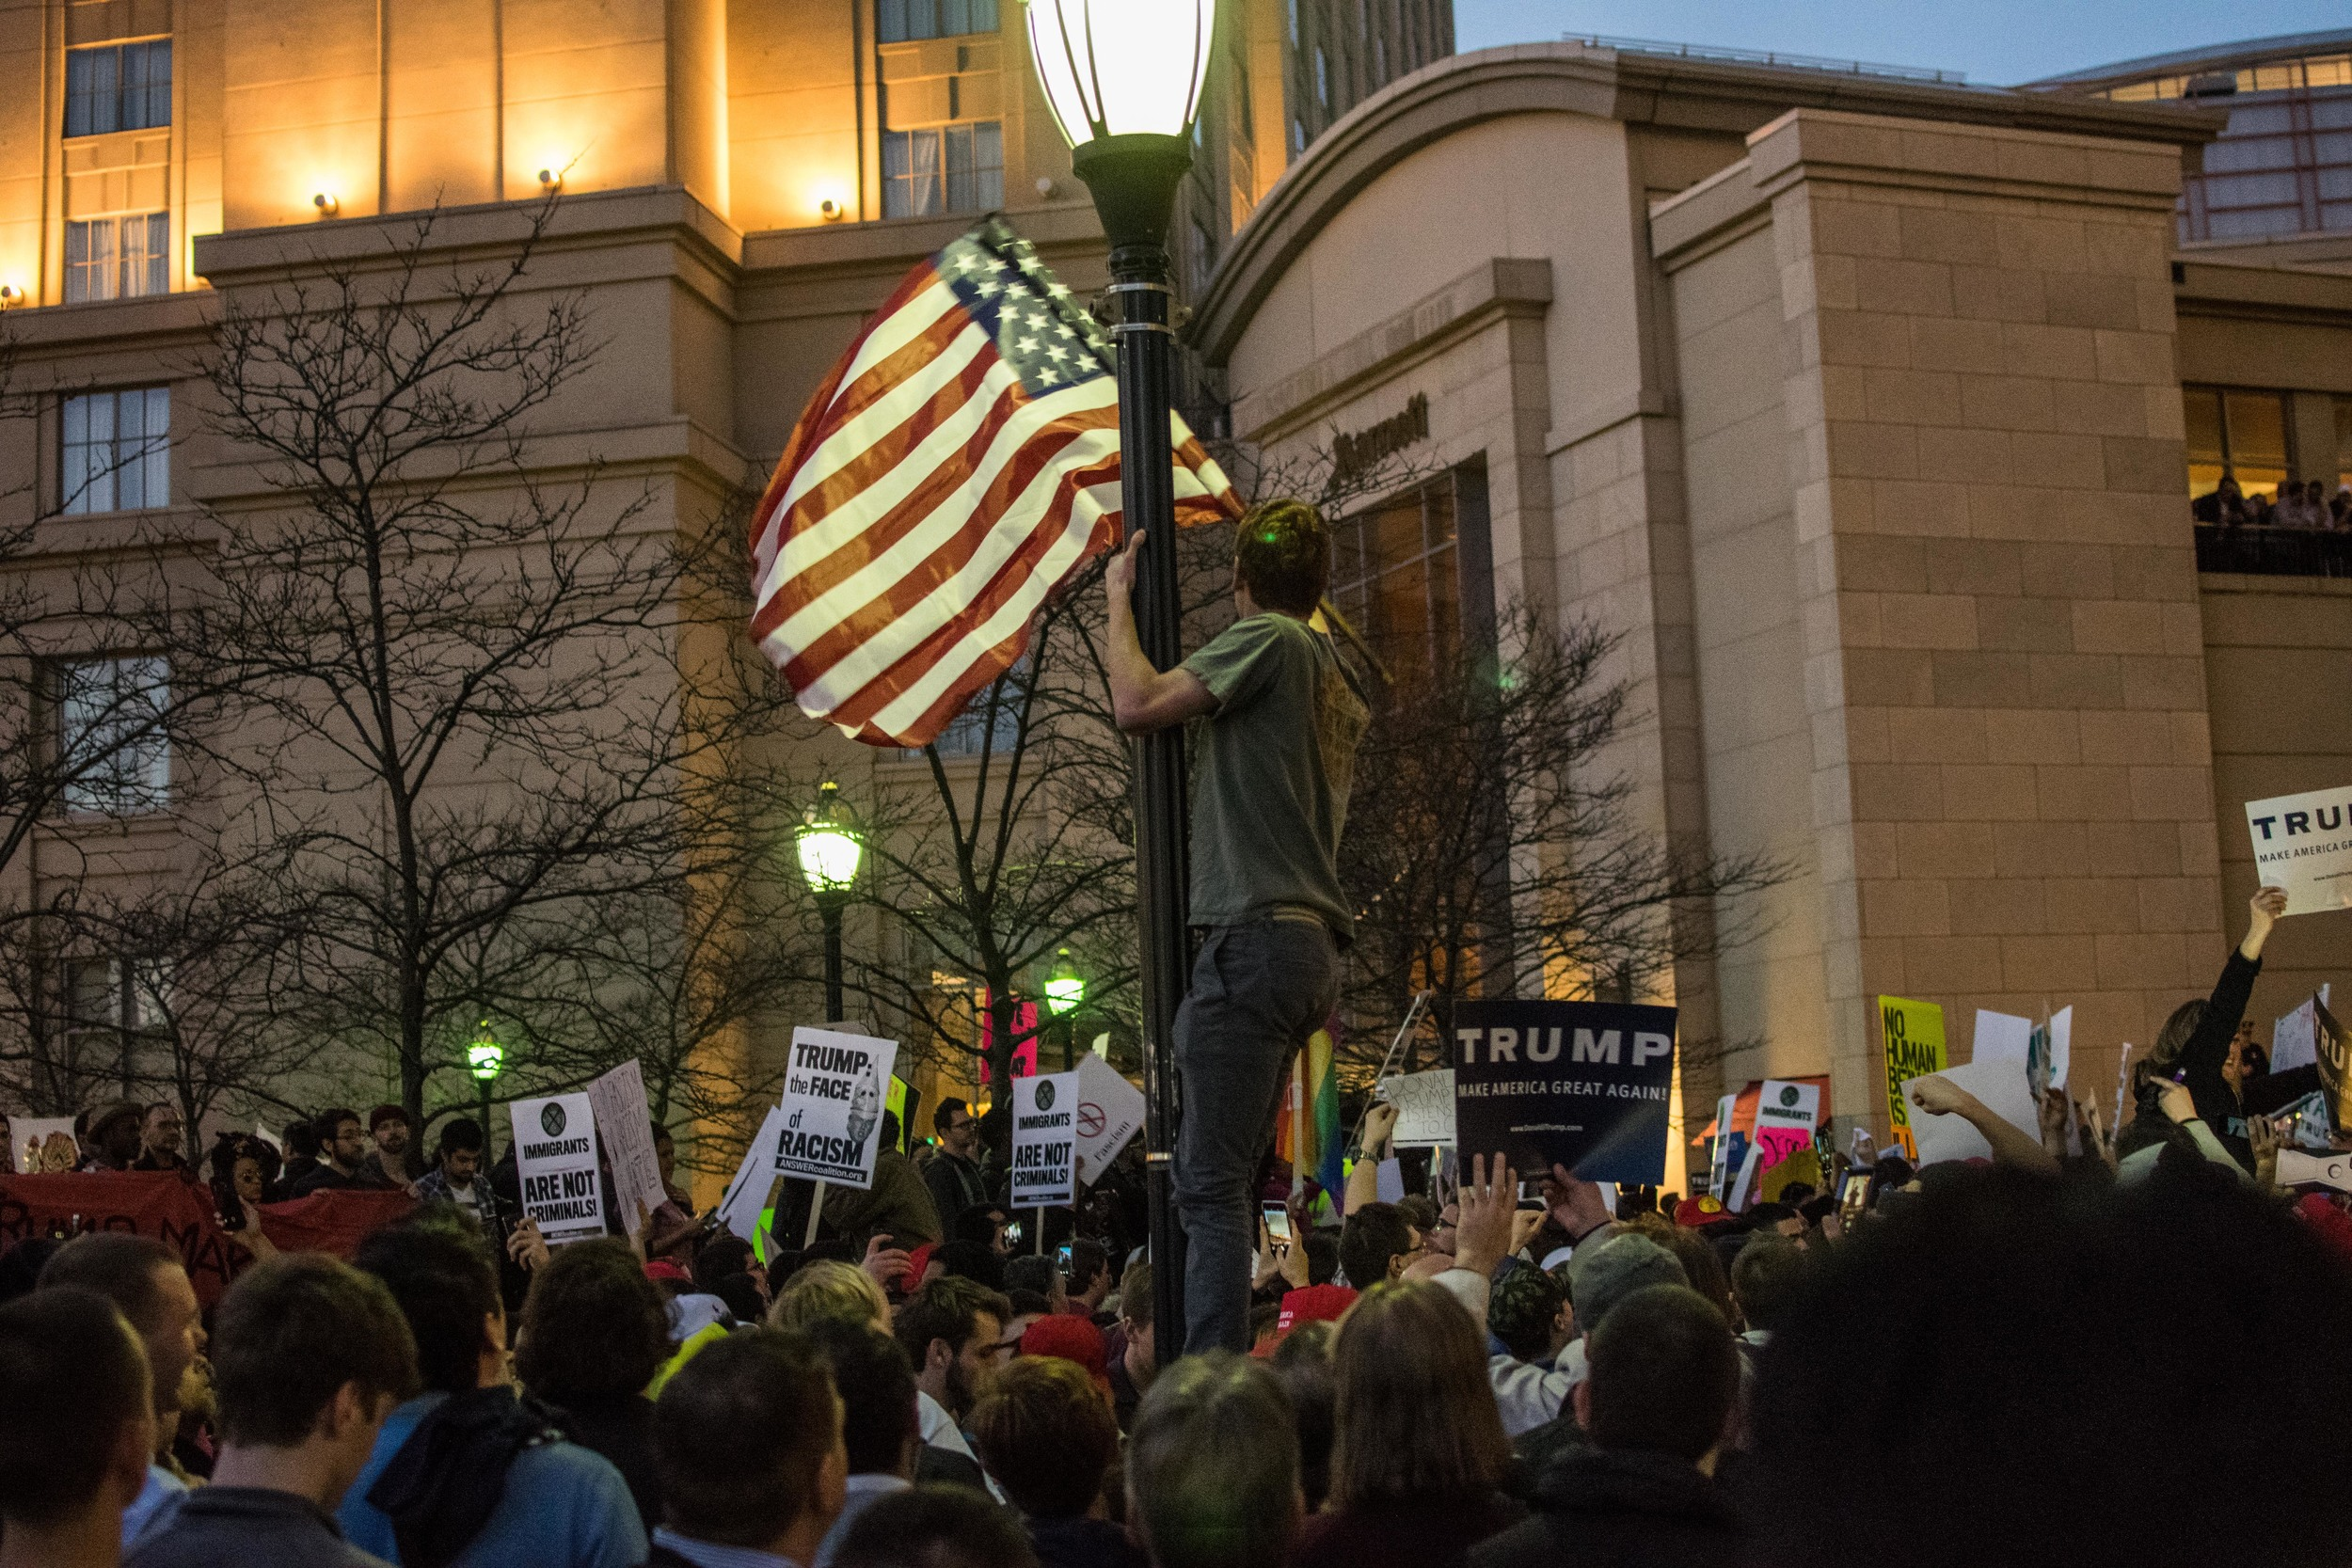 A Trump supporter emerges from the sea of people, hanging from a lamppost and wielding an American flag.